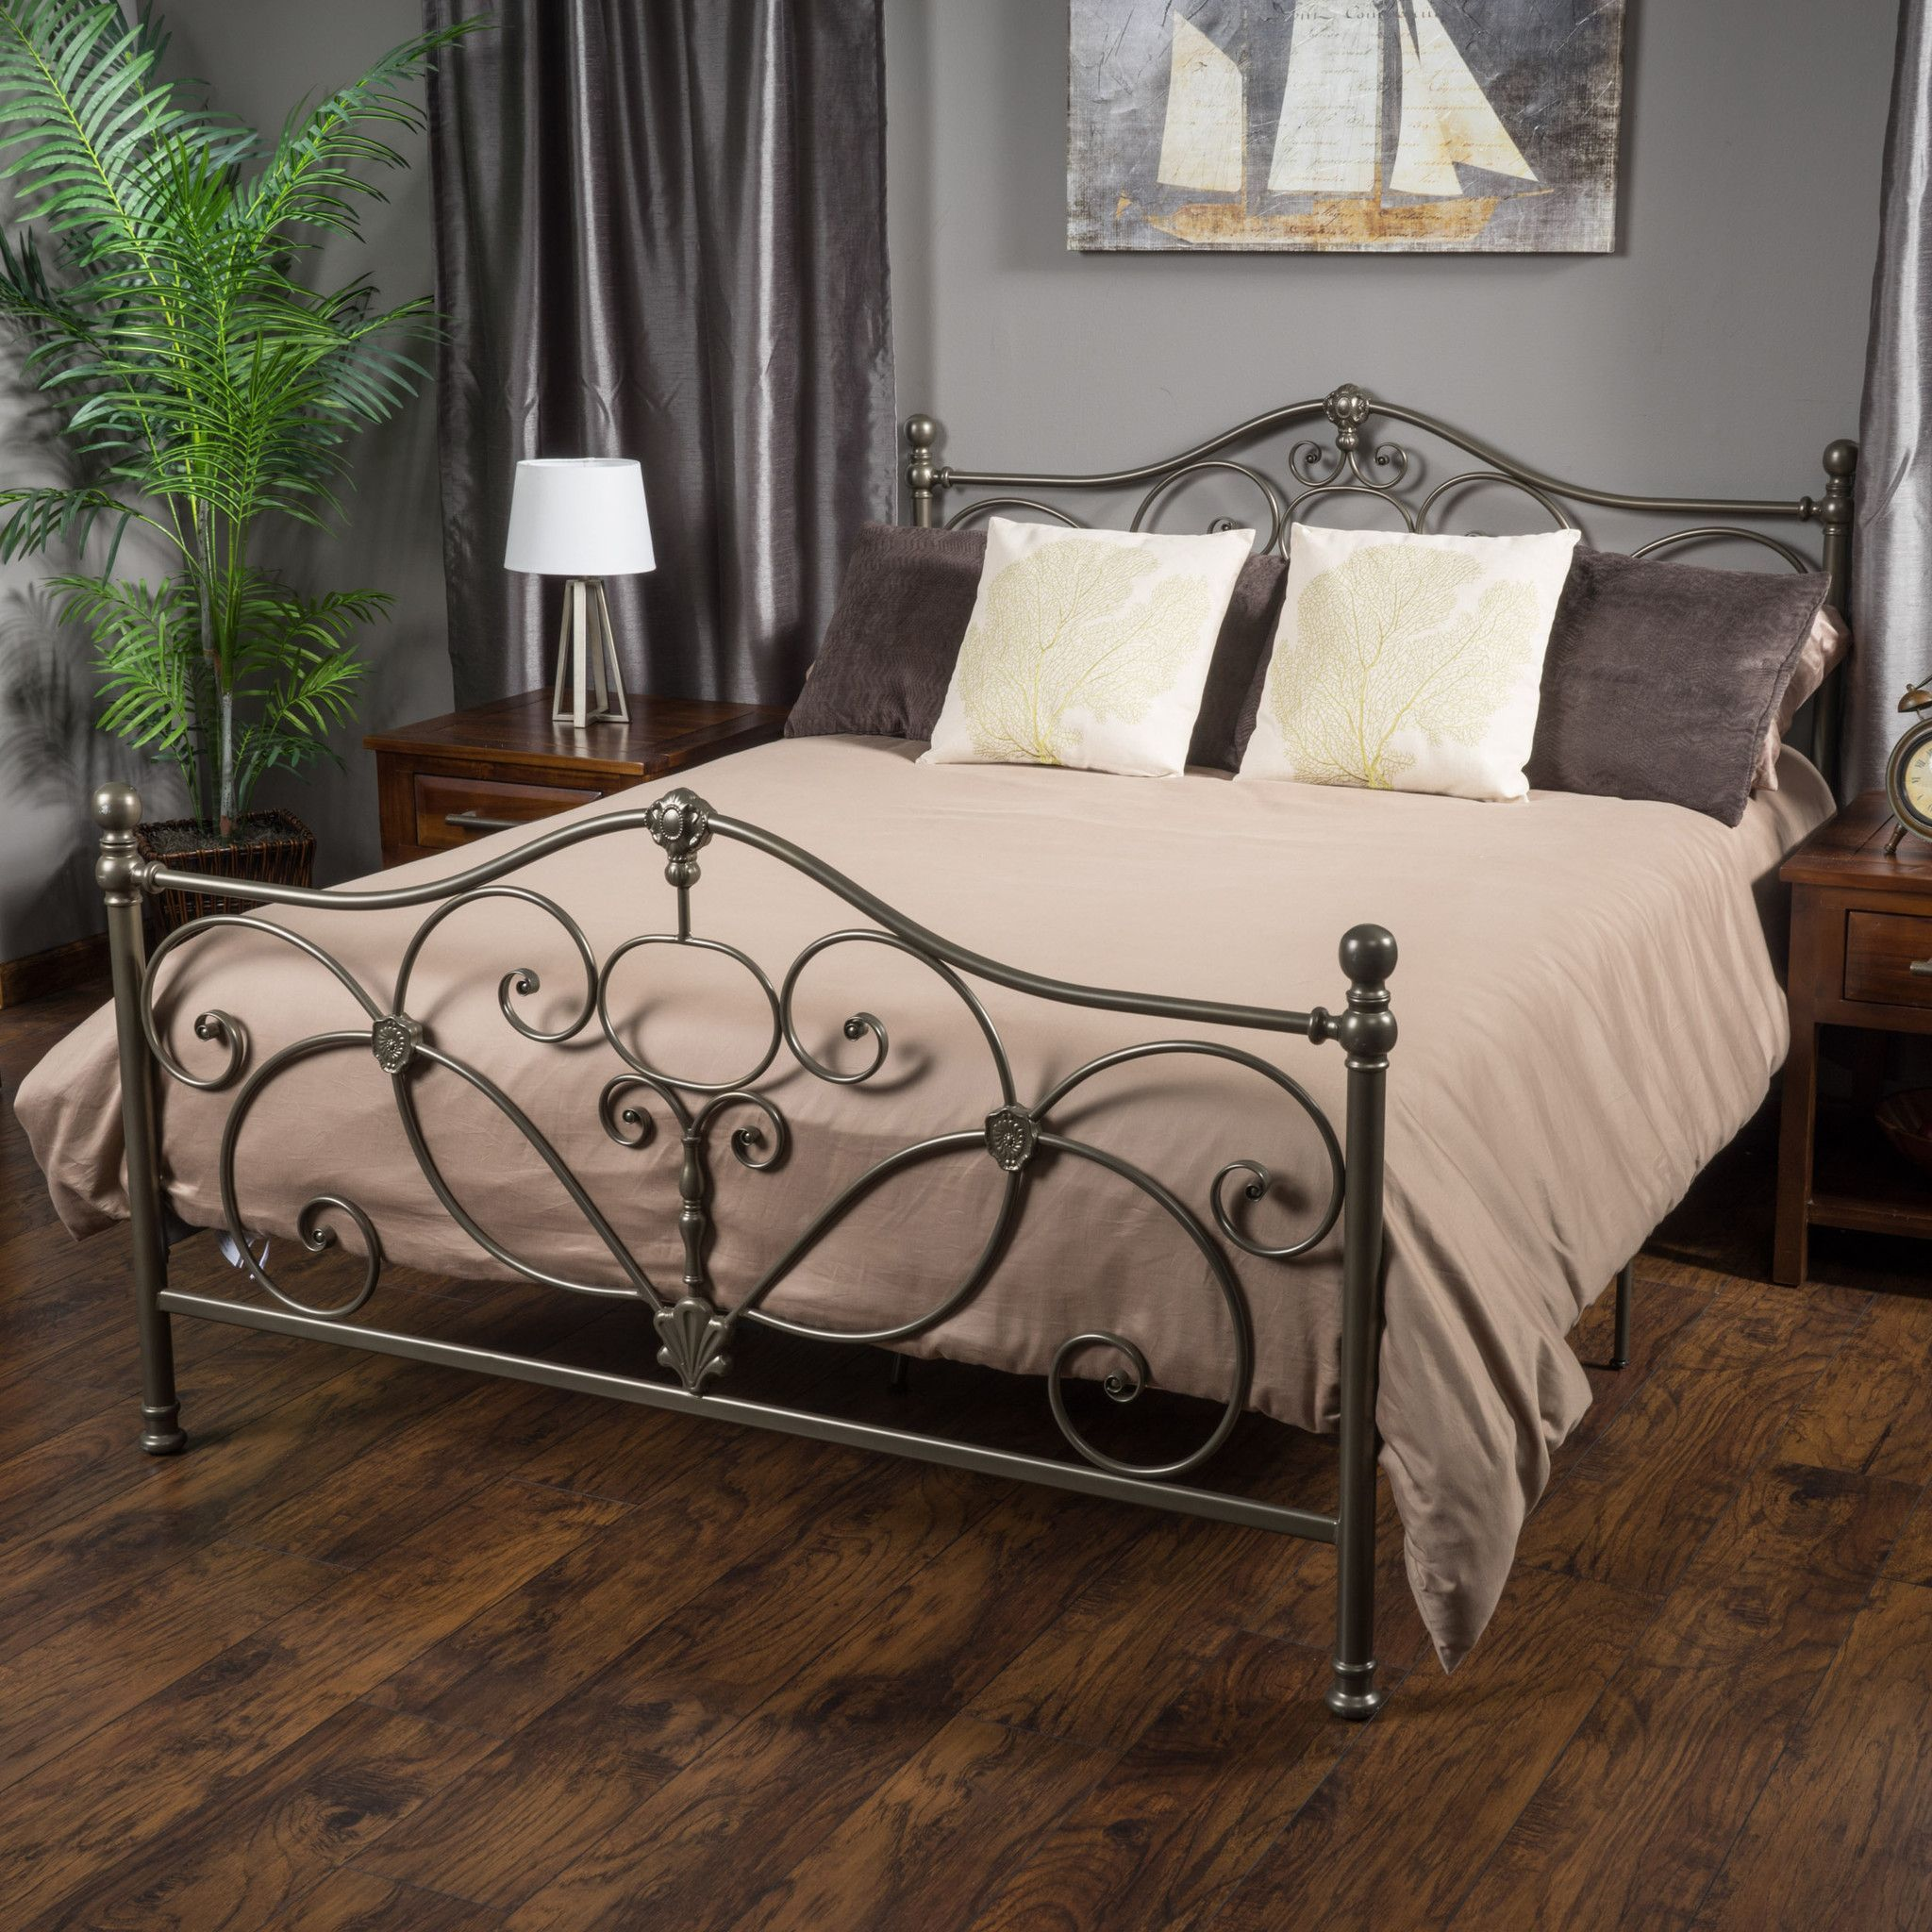 Denise austin home san luis king champagne iron bed home decor